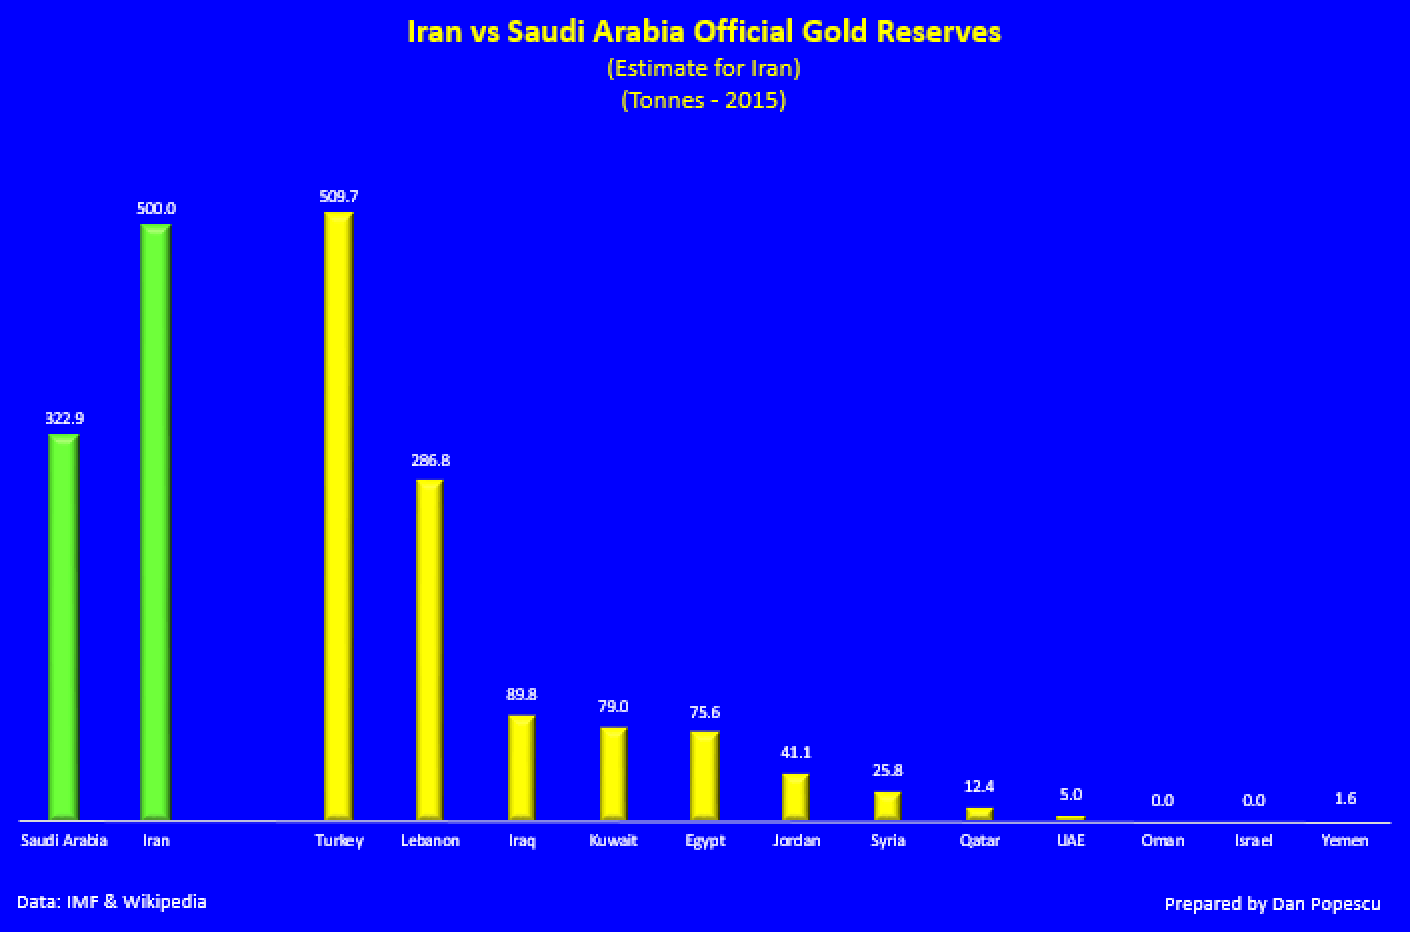 Iran vs Saudi Arabia official gold reserves